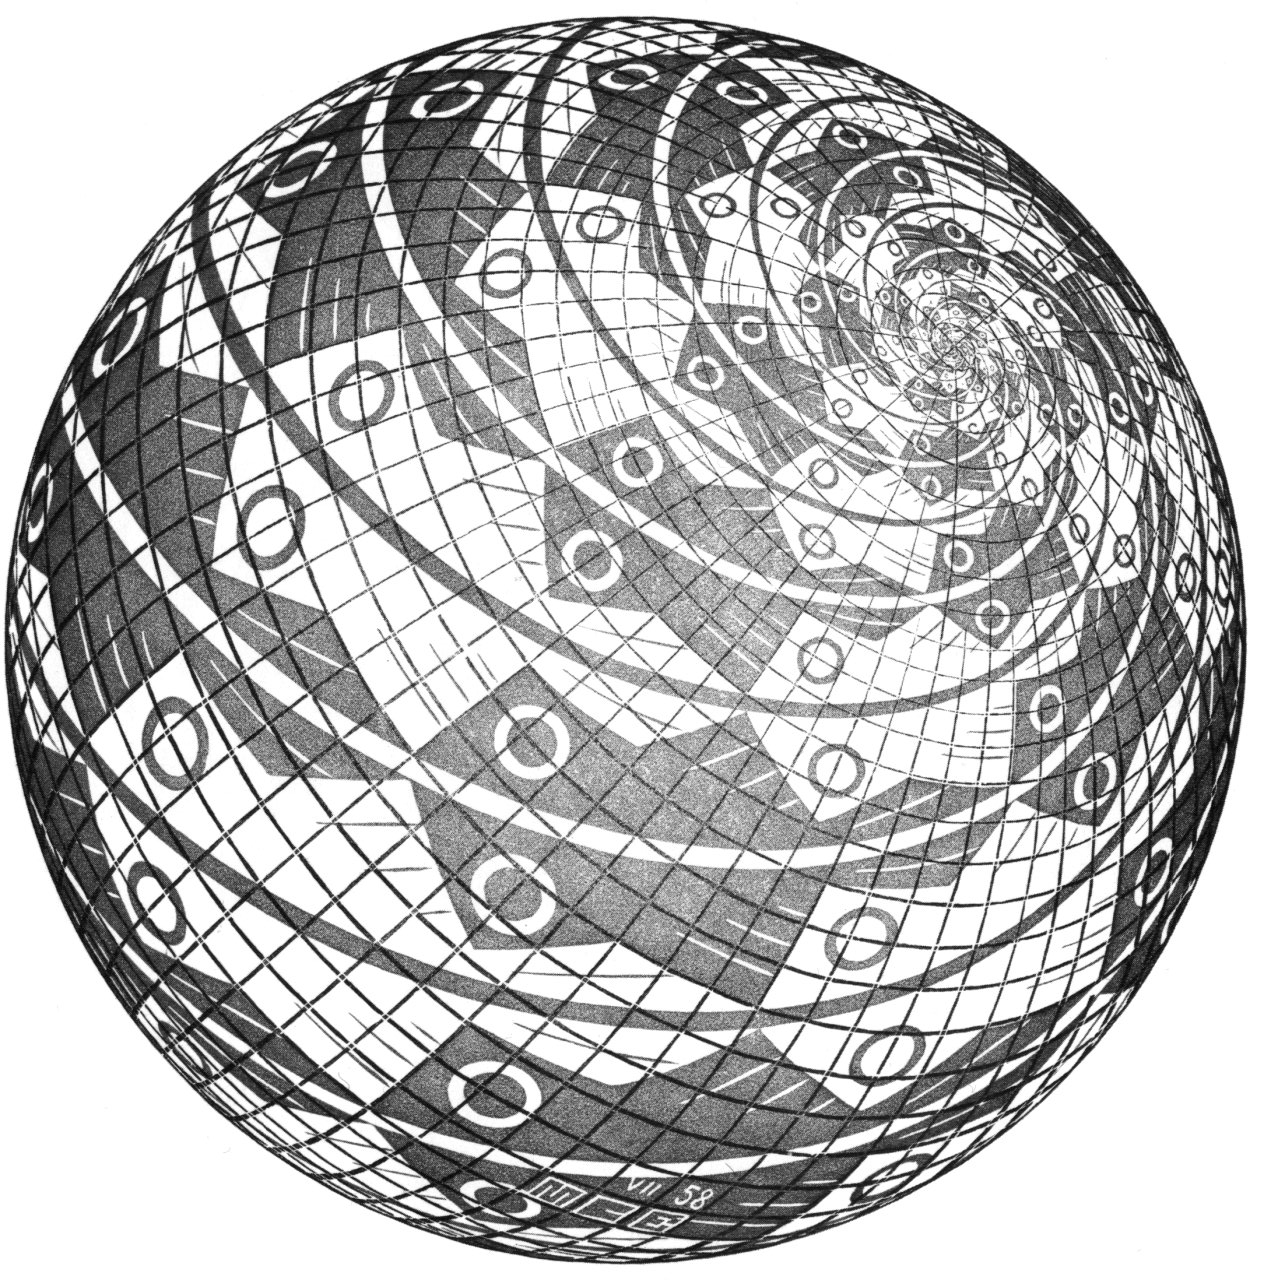 1264x1280 Escher Art Sphere Surface With Fishes